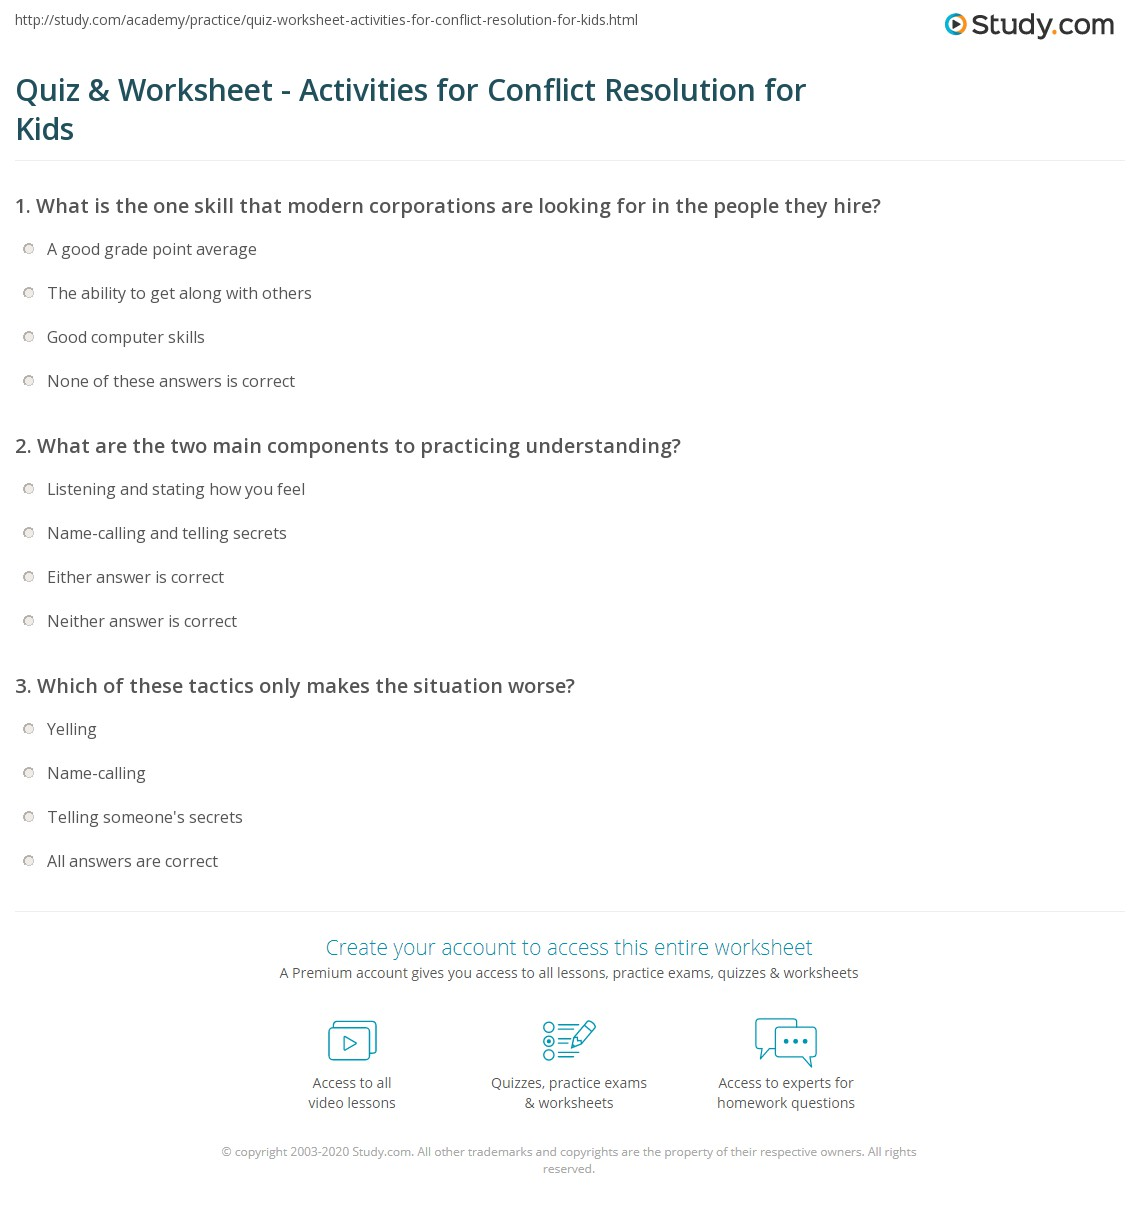 Quiz Worksheet Activities For Conflict Resolution For Kids